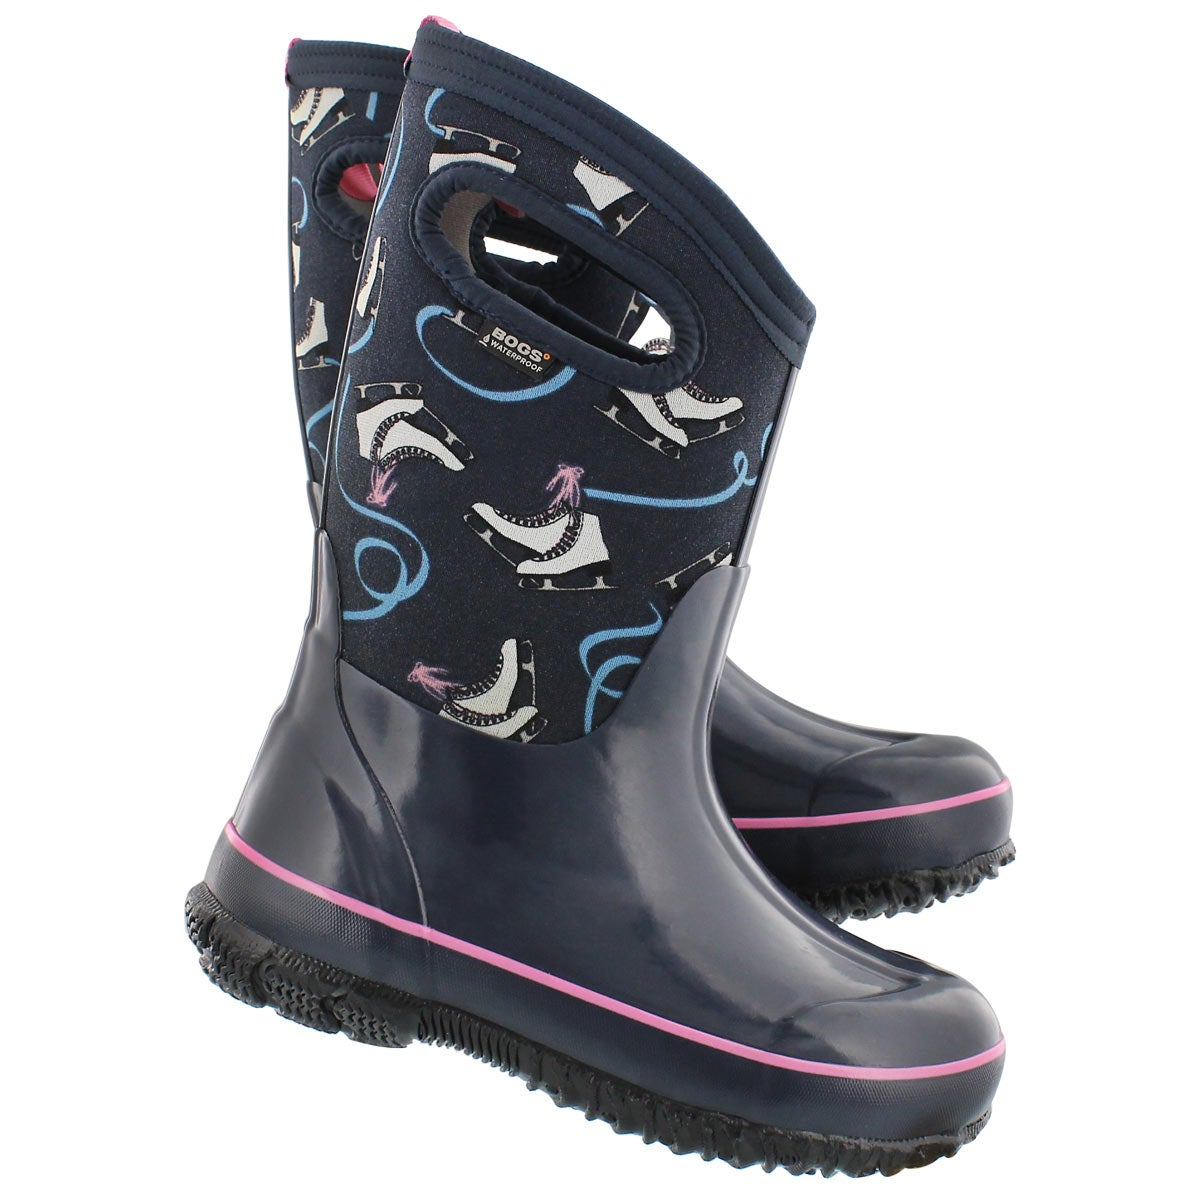 Grls Classic Ice Skates nvy multi boot